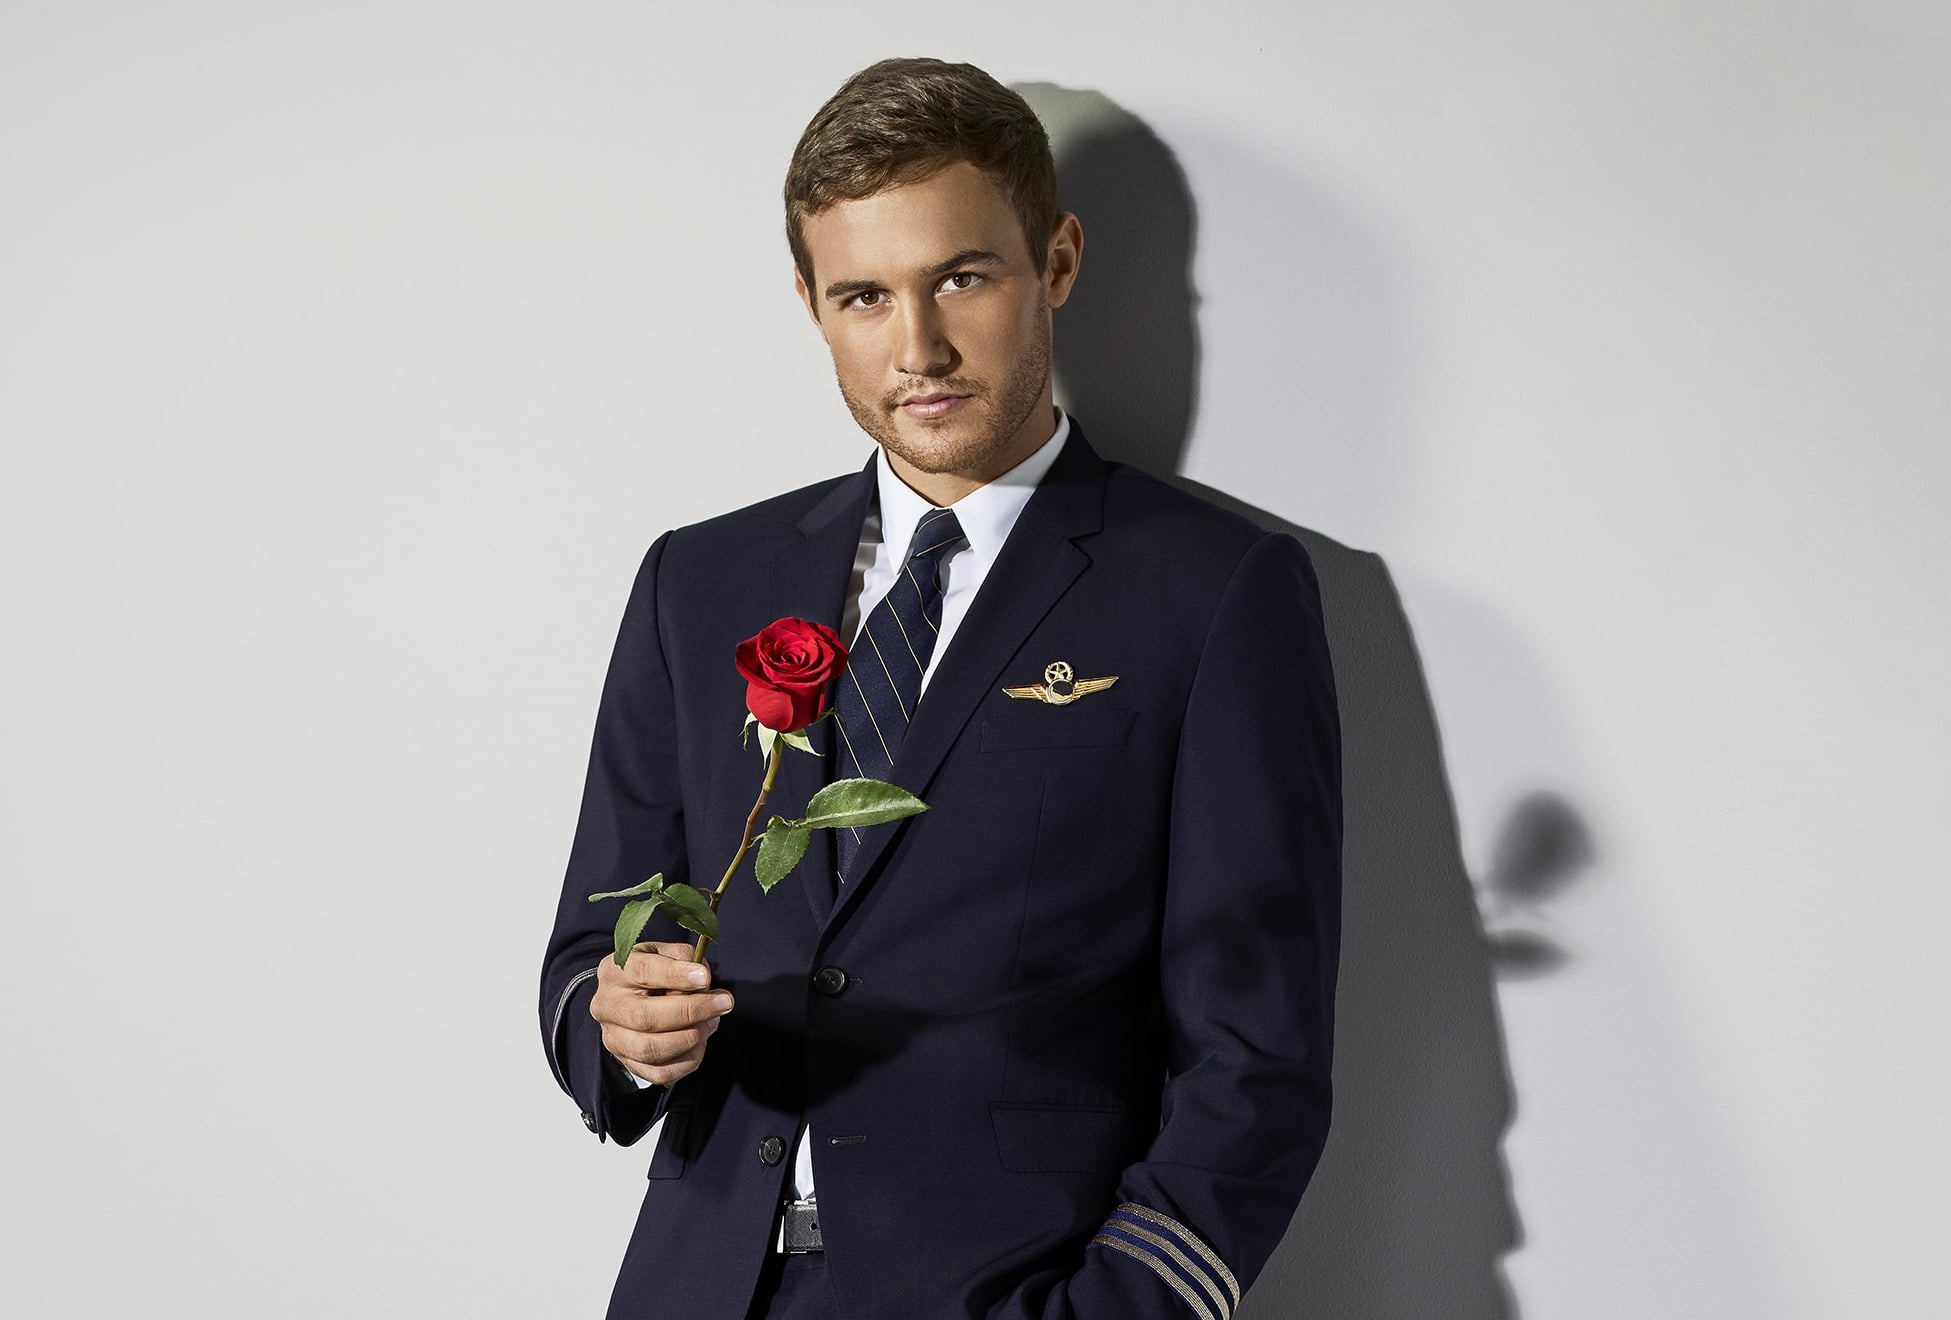 THE BACHELOR - Airline pilot Peter Weber flew into the hearts of women everywhere and left all of America shocked and heartbroken when Hannah Brown decided to end their relationship. Now Peter is back and ready to once again capture hearts across the nation when he returns for another shot at love as the star of the 24th season of ABC's hit romance reality series